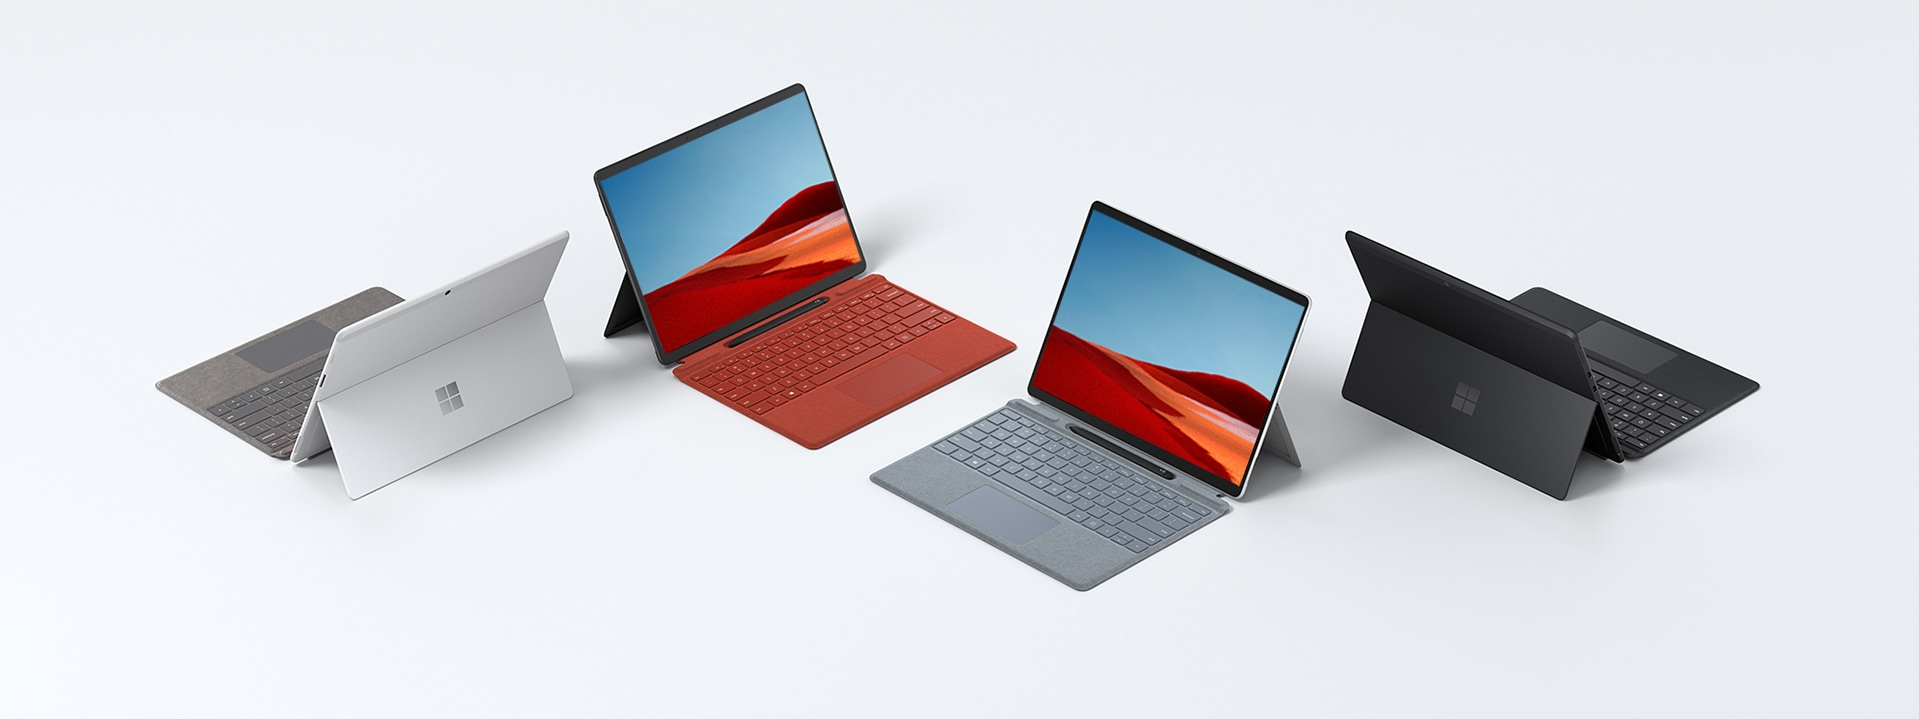 Surface Pro X with Surface Dock 2 and Surface Arc Mouse